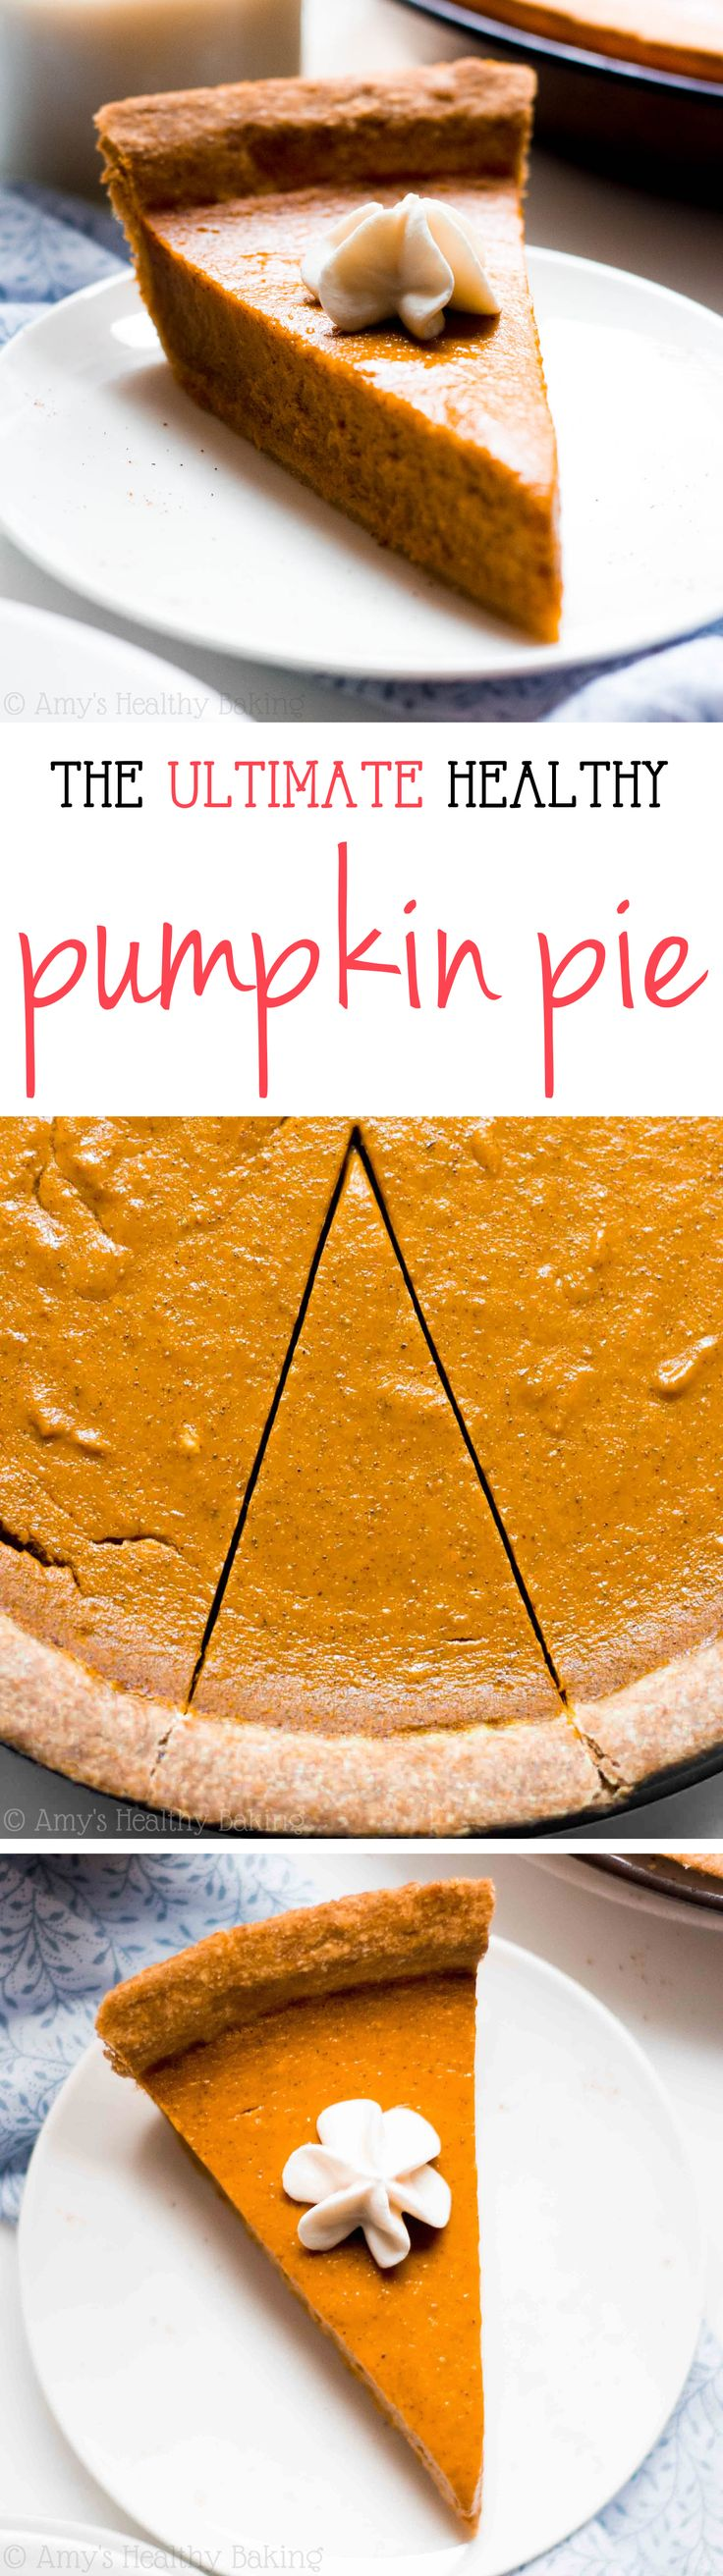 The ULTIMATE Pumpkin Pie -- this skinny pie doesn't taste healthy at all! You'll never need another pumpkin pie recipe again!